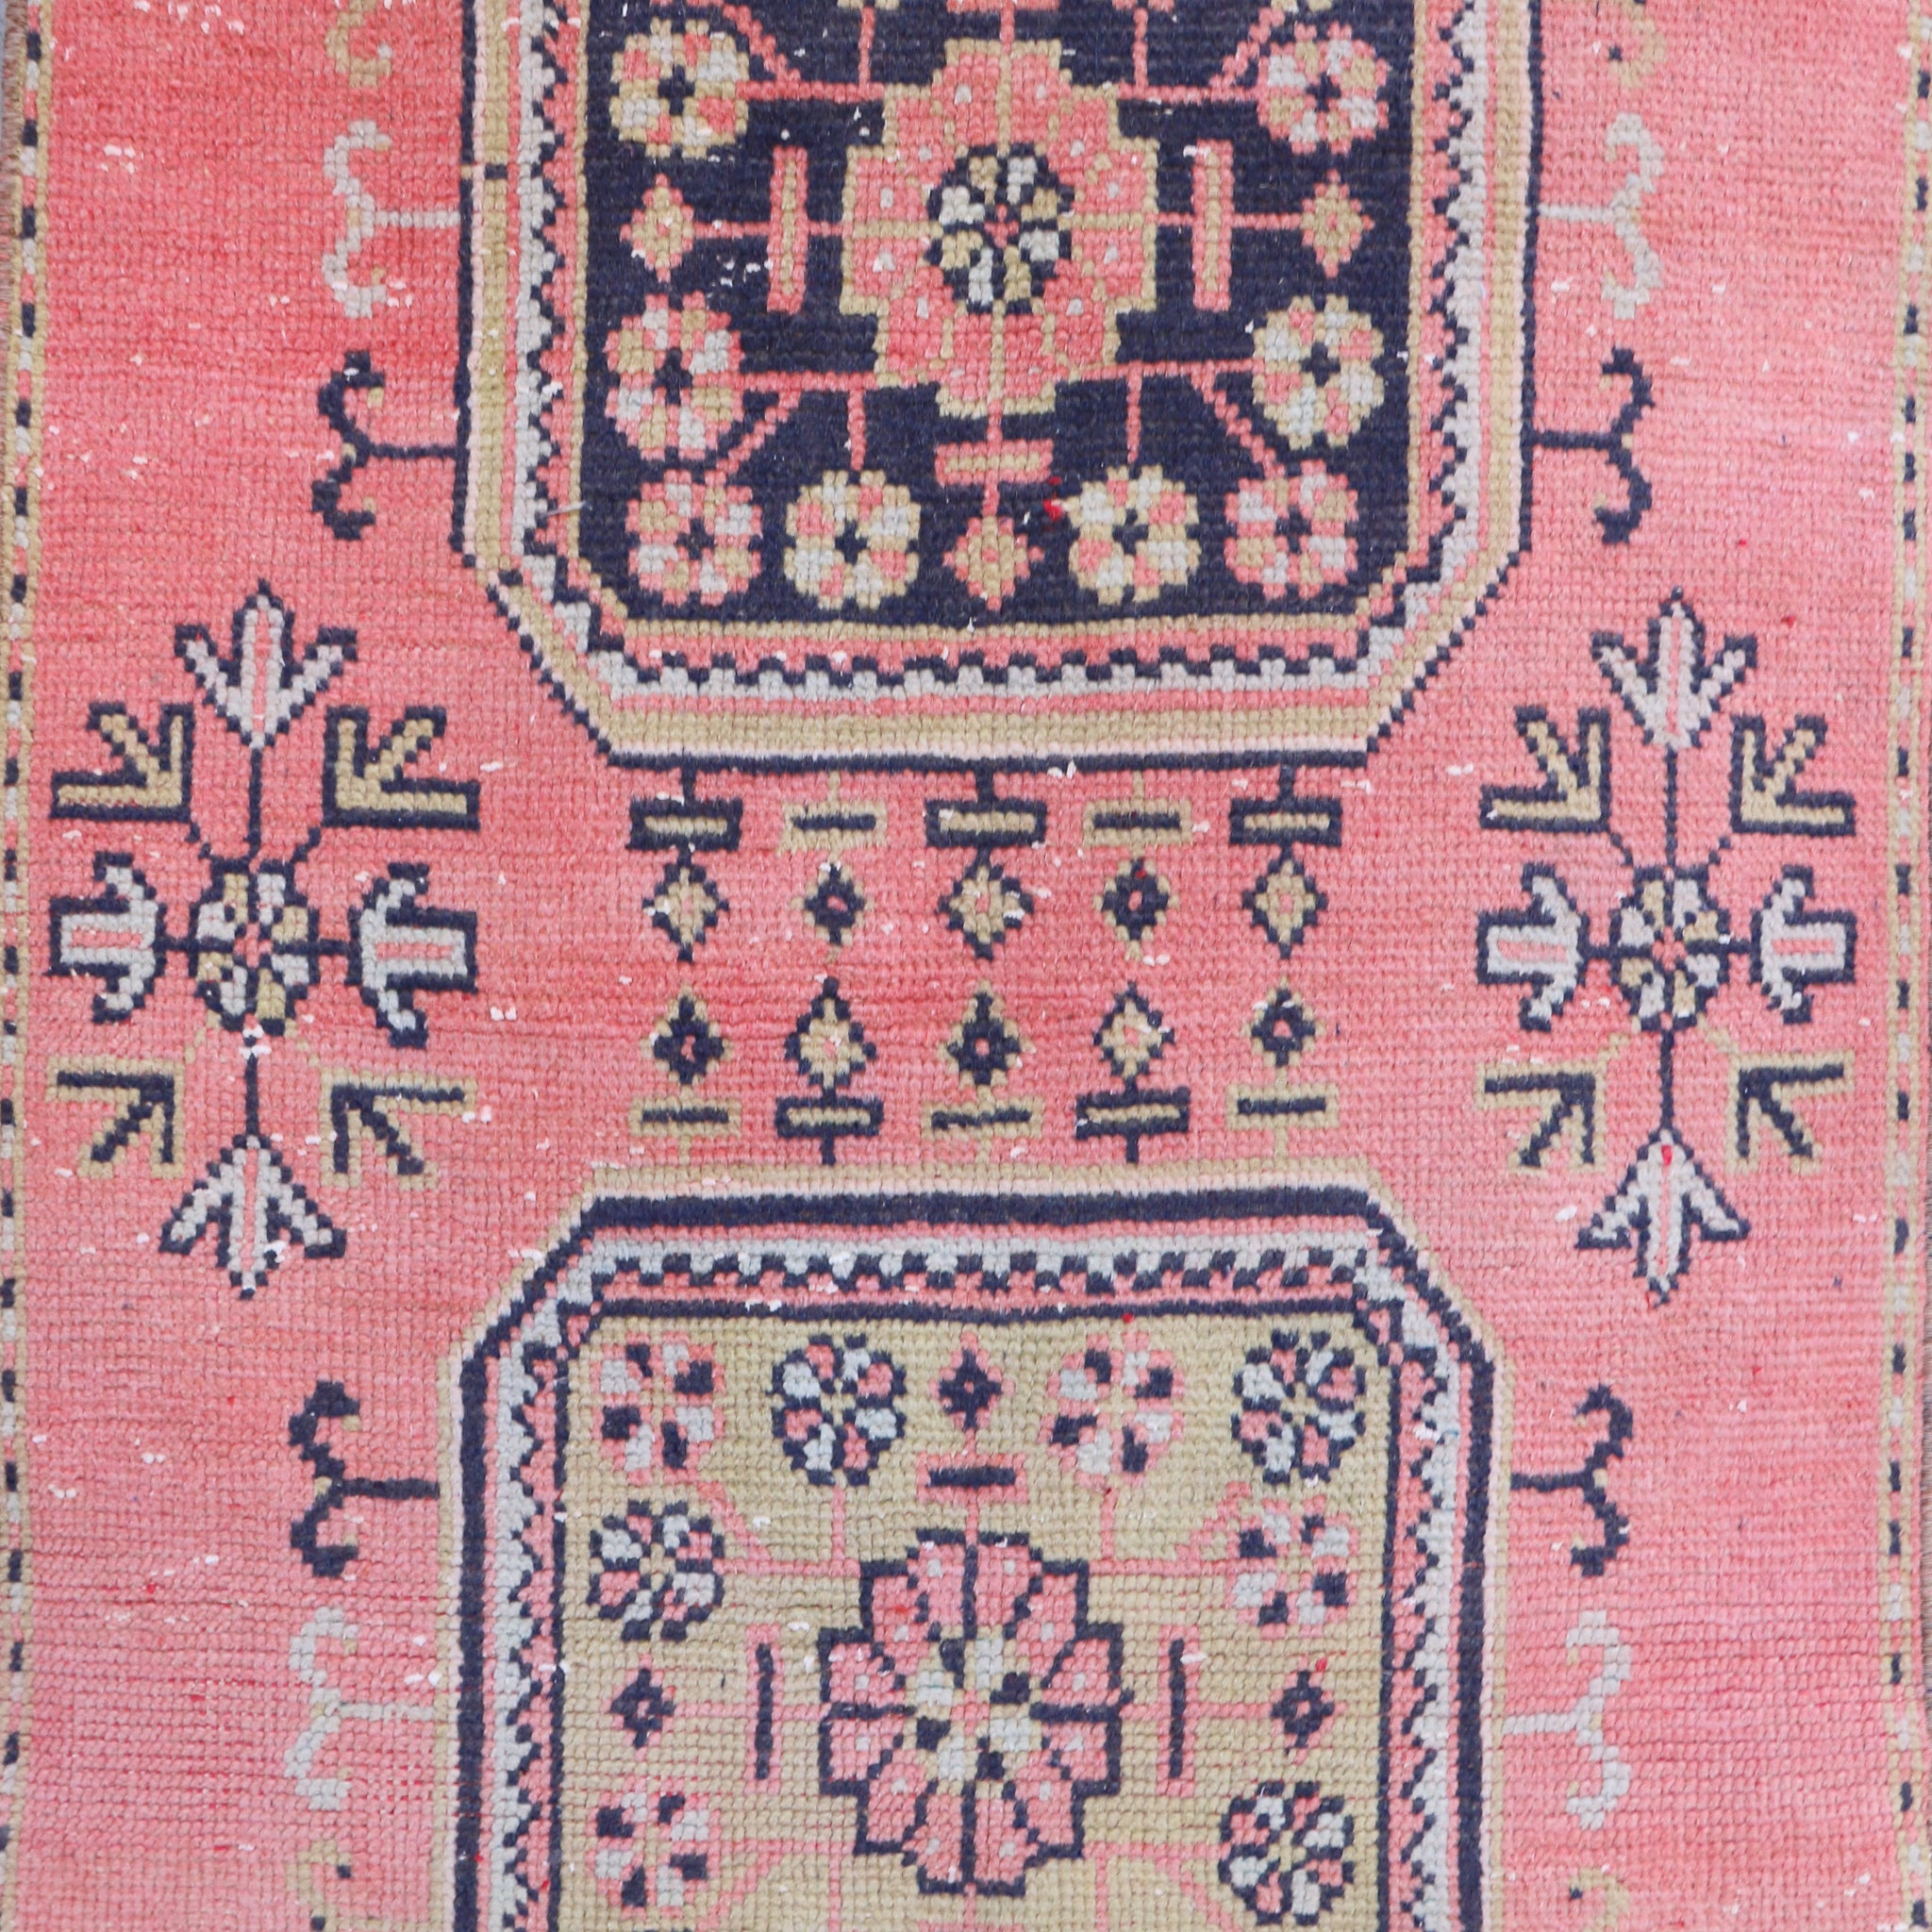 ON HOLD NOT AVAILABLE 2280 Lale 2'10x11'8 Handwoven Vintage Rug